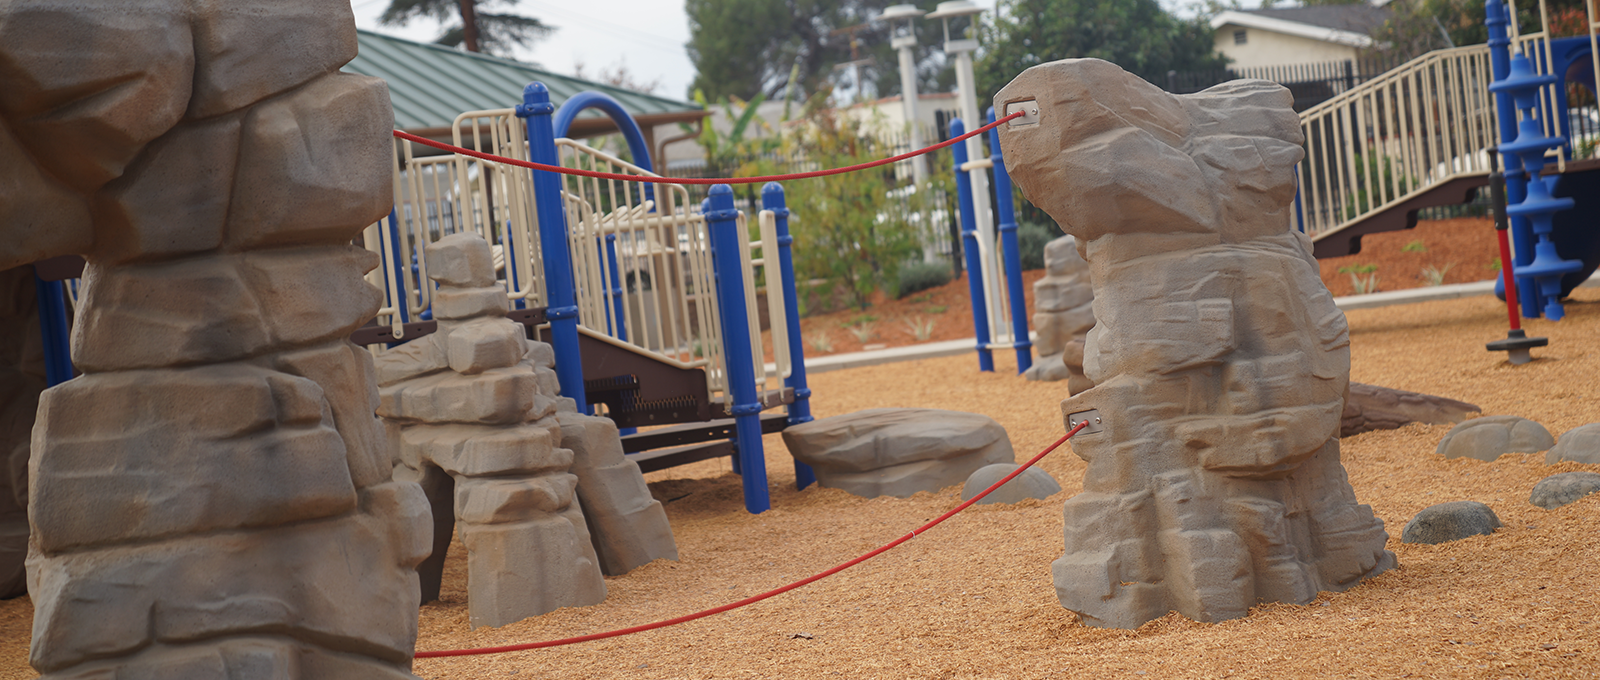 A playground at Marshall Park